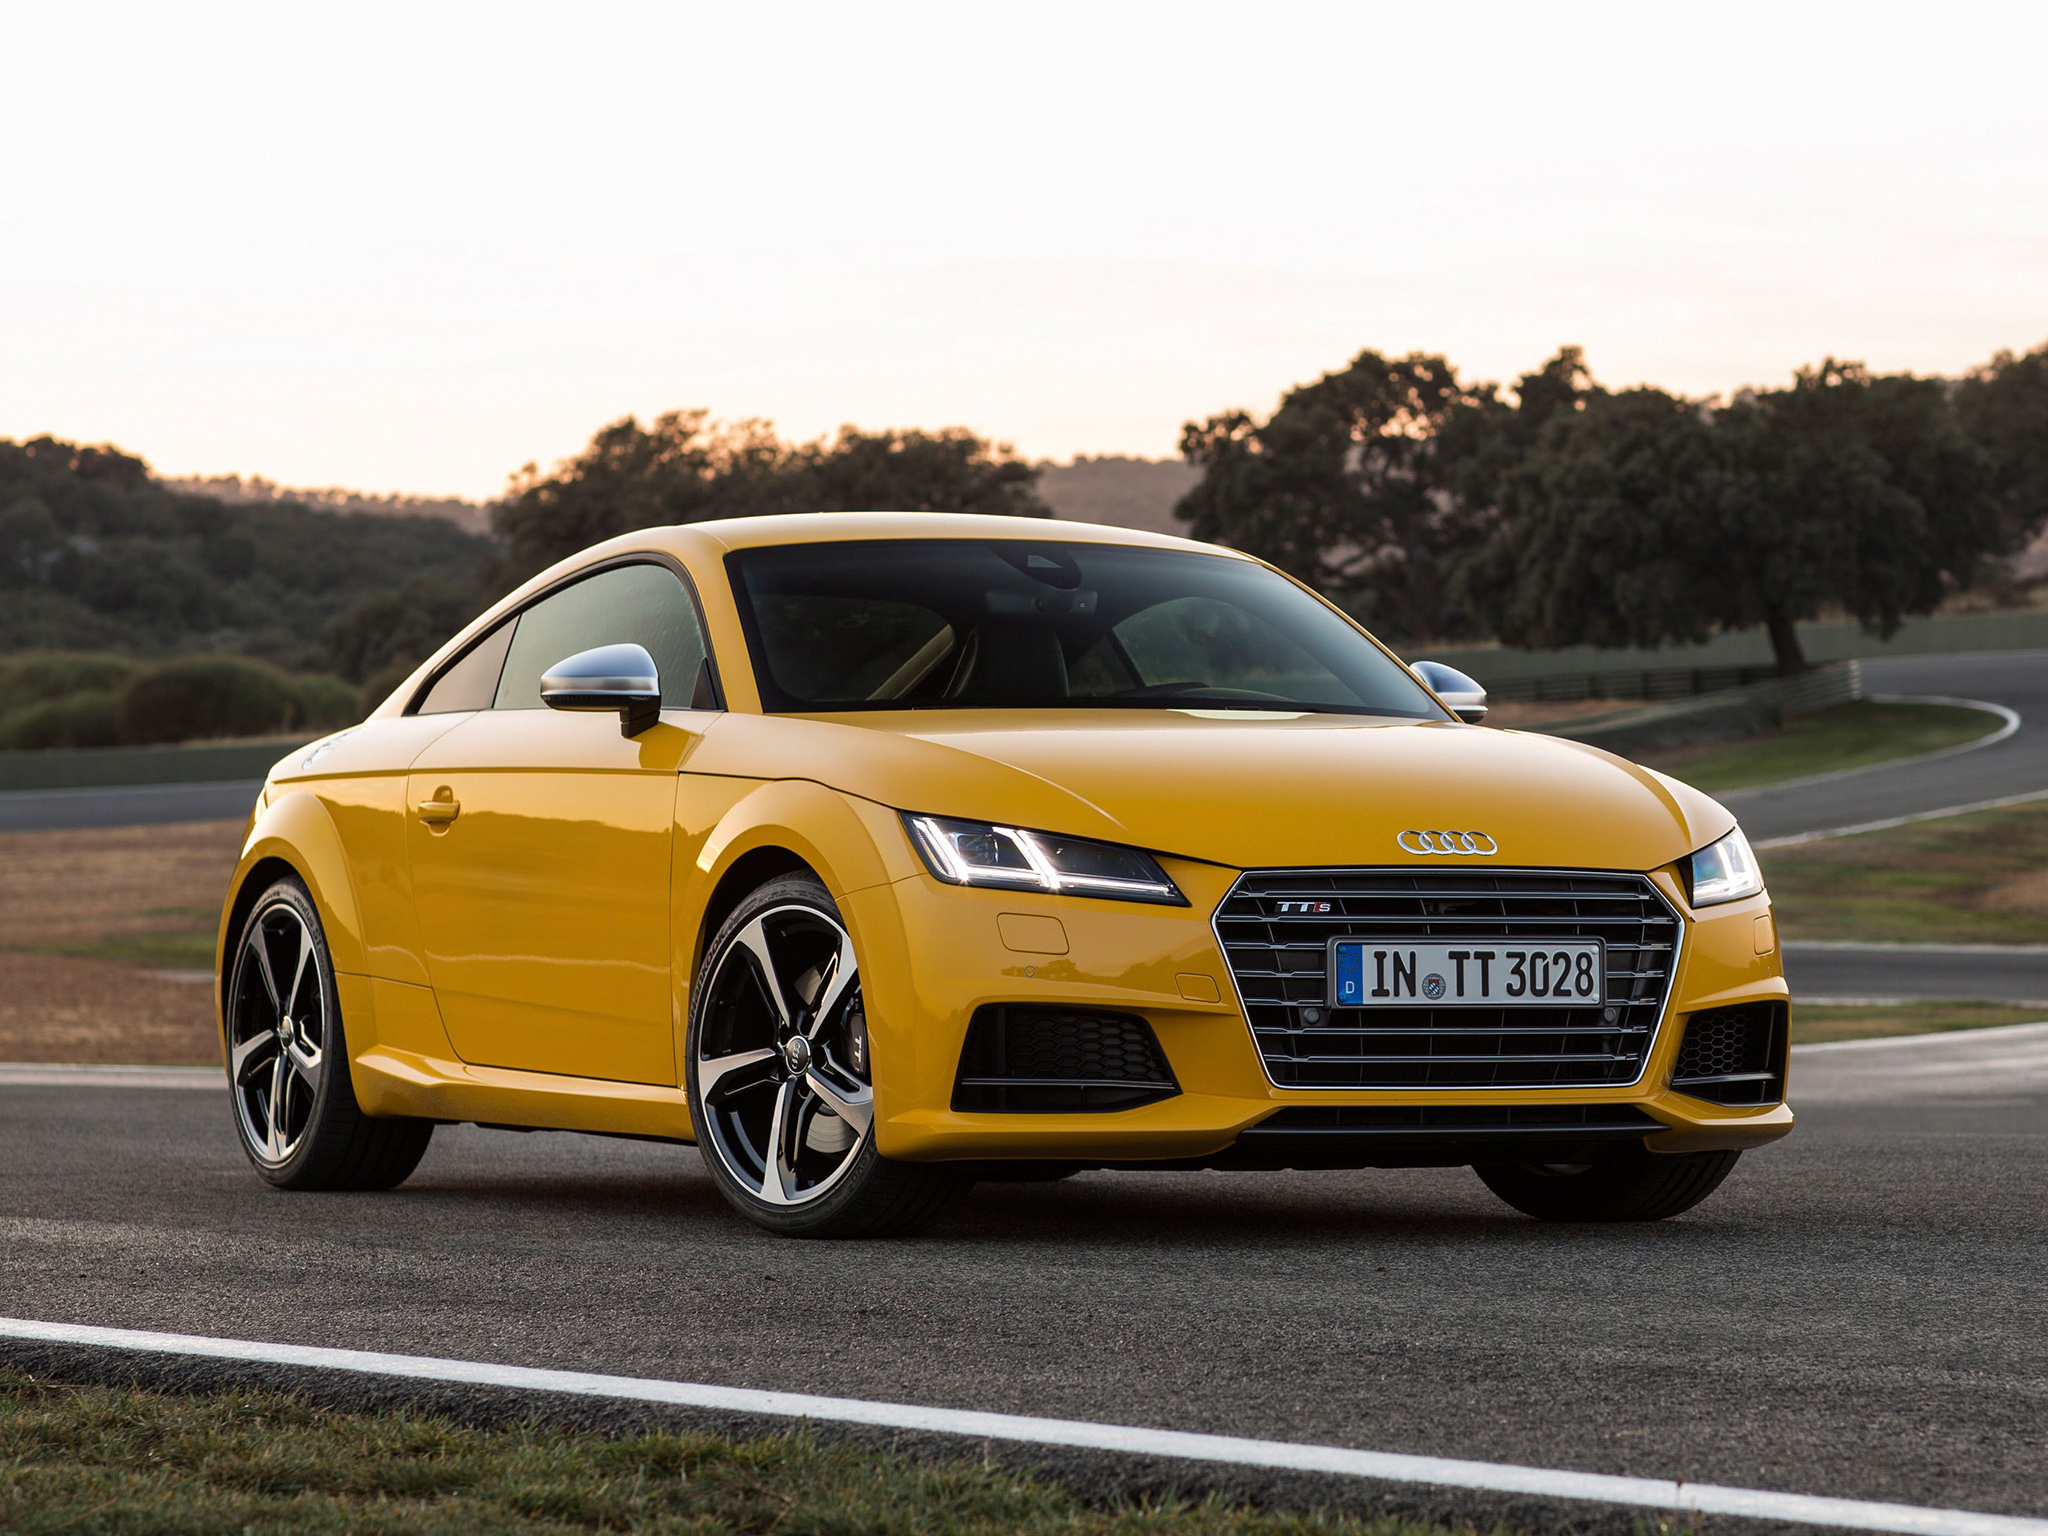 Audi Sports Car Wallpaper New Audi Tt Amp Tts Coupe Photos Show Vegas Yellow And Tango